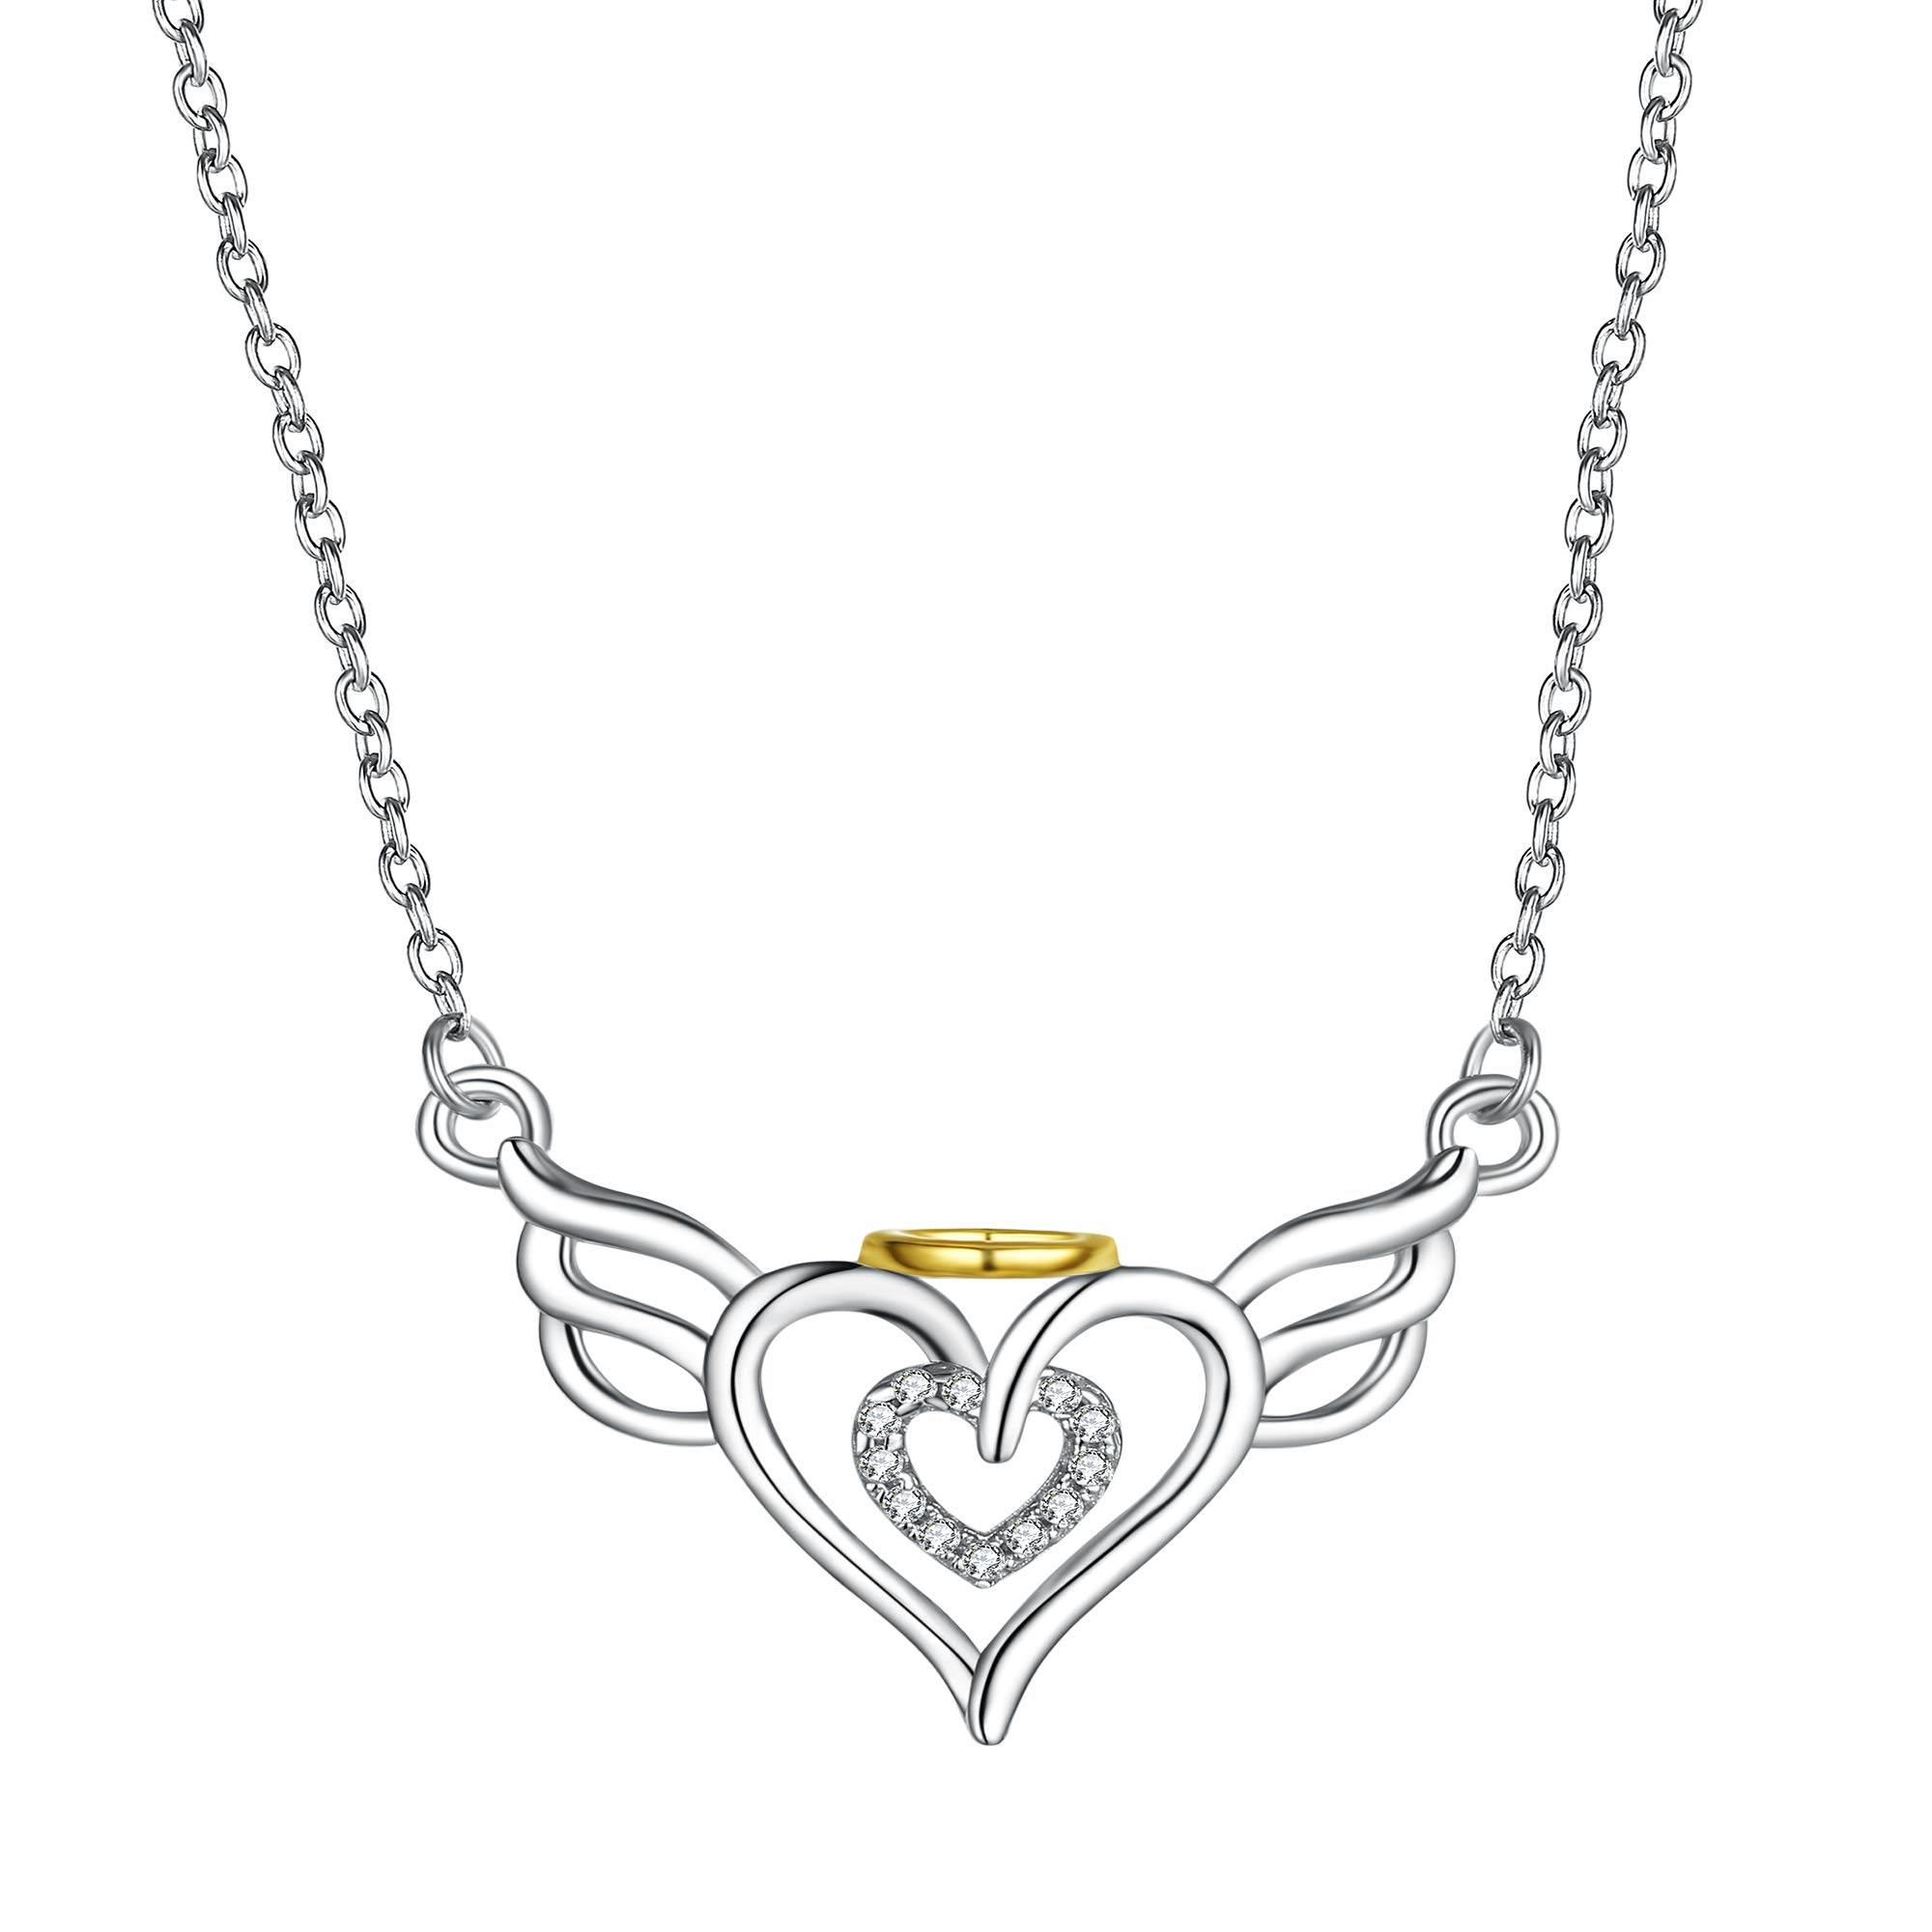 Sterling Silver Pendant Necklaces - Women 18k Gold Plated Charm Jewelry - Wings Heart by SISGEM (Image #1)